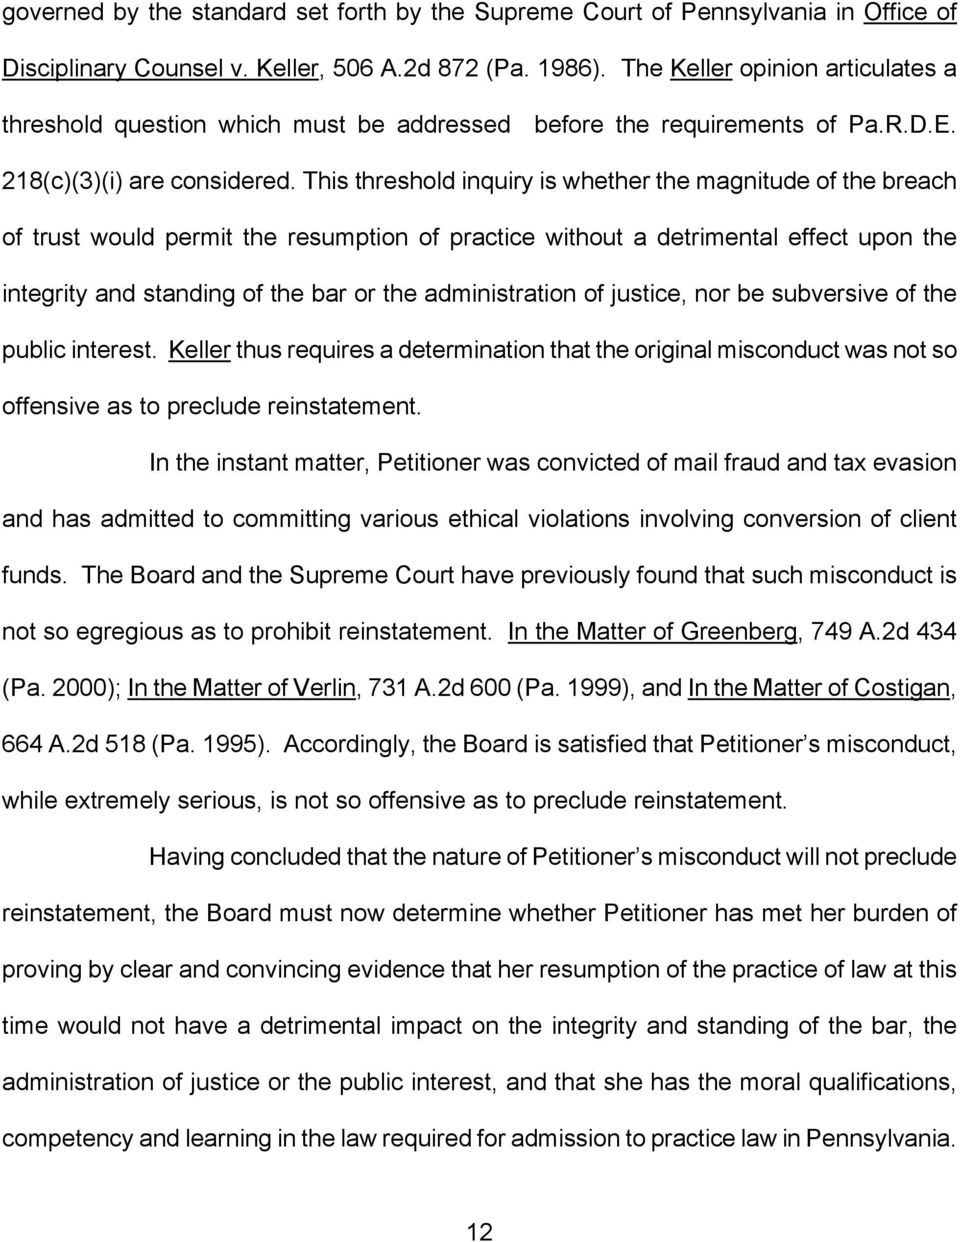 This threshold inquiry is whether the magnitude of the breach of trust would permit the resumption of practice without a detrimental effect upon the integrity and standing of the bar or the